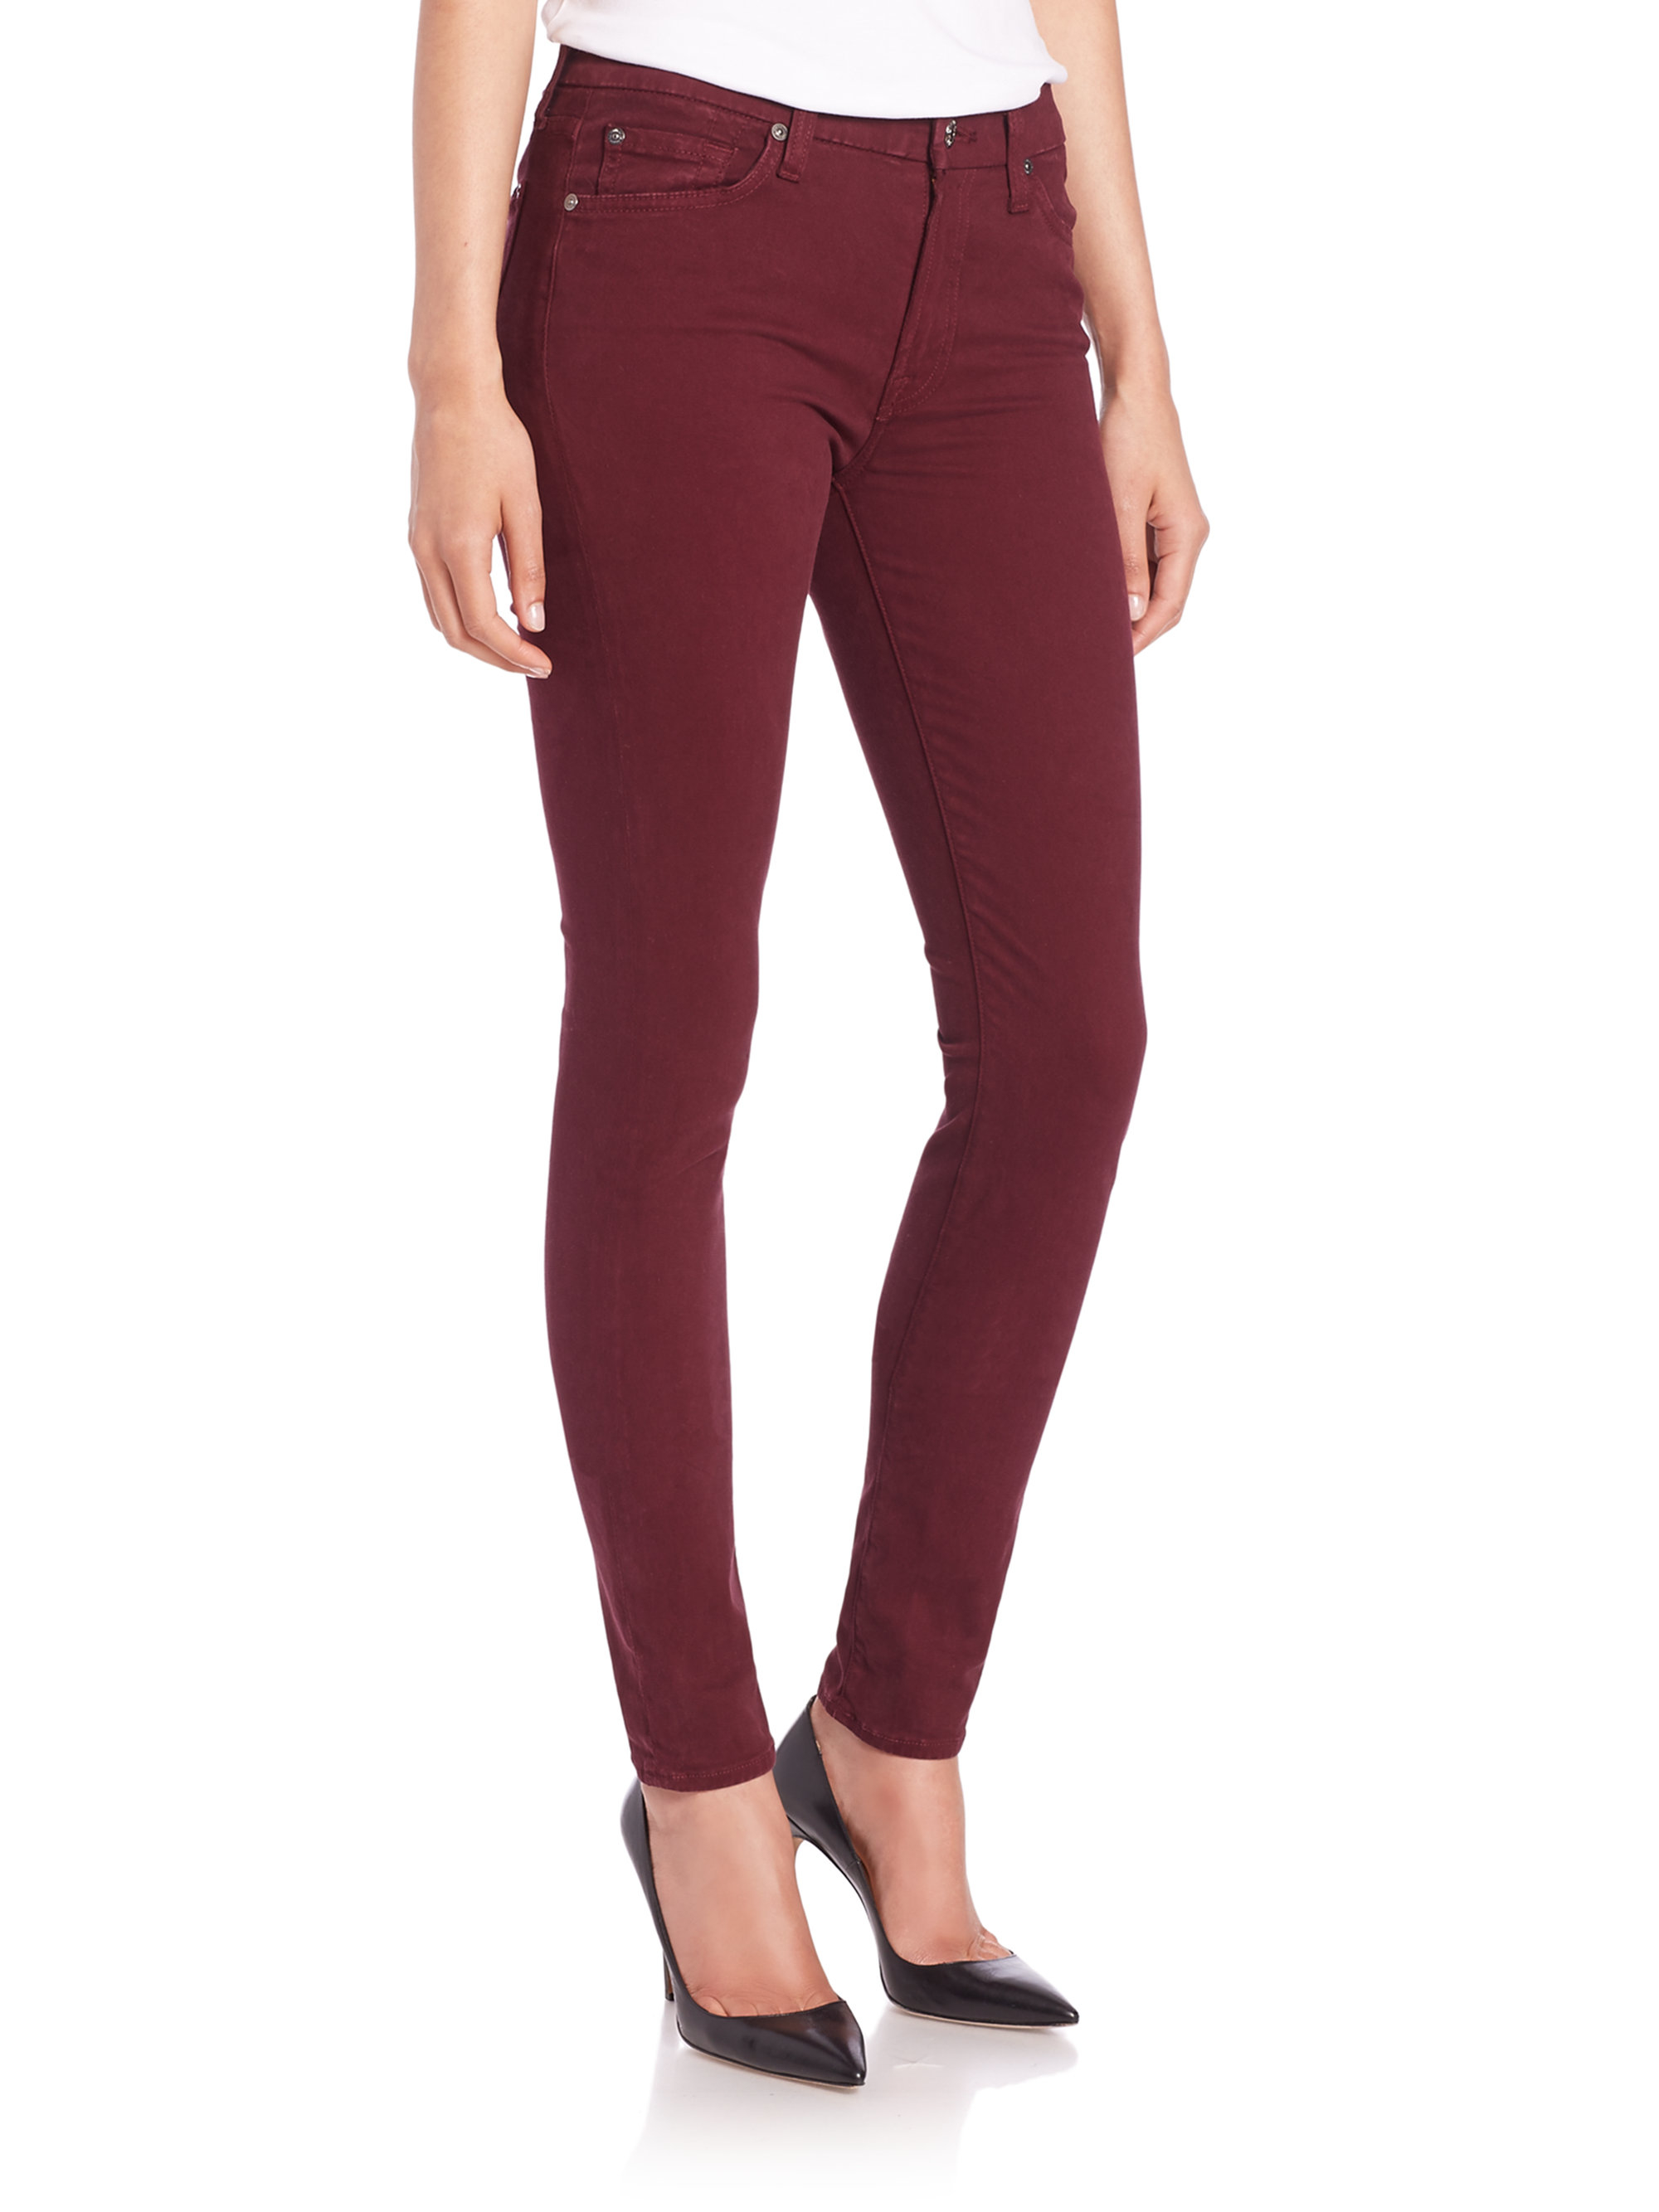 7 for all mankind Mid-rise Skinny Brushed Sateen Jeans in Red | Lyst